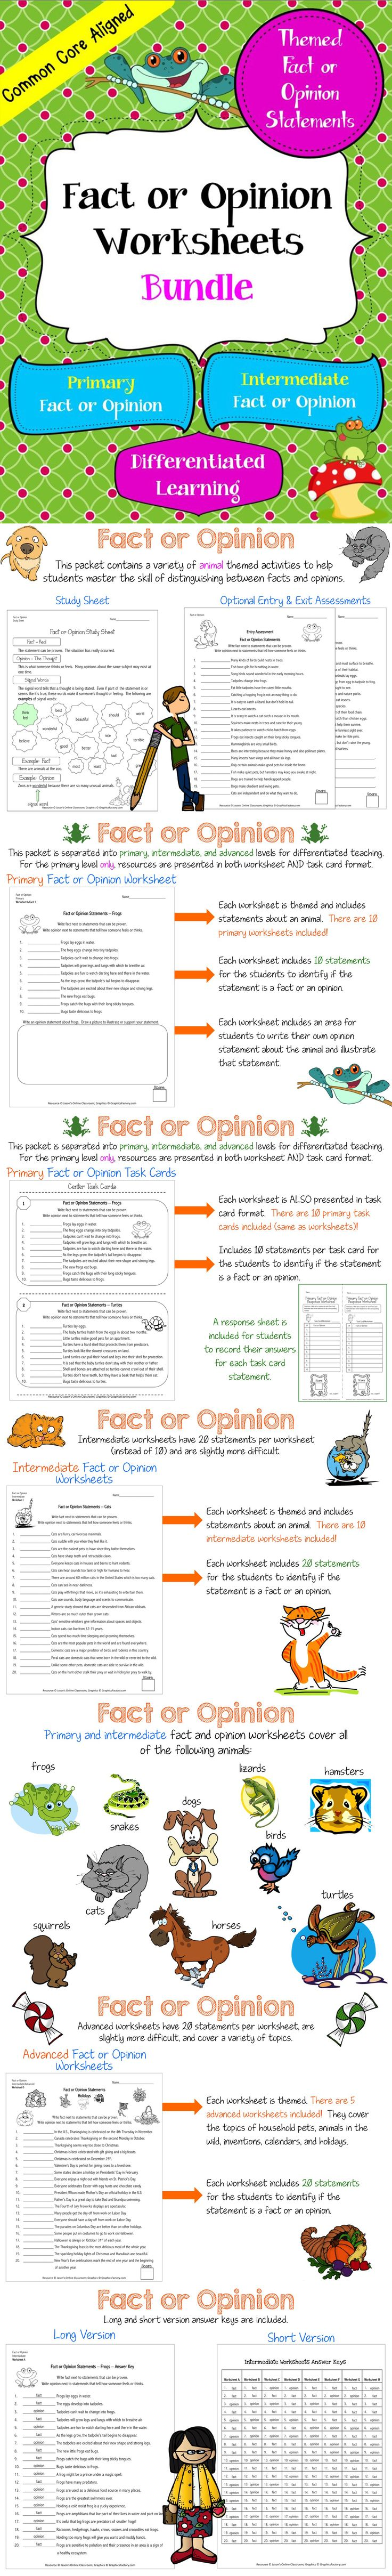 worksheet Fact Opinion Bias Worksheet 195 best fact vs opinion images on pinterest teaching ideas and task cards worksheets